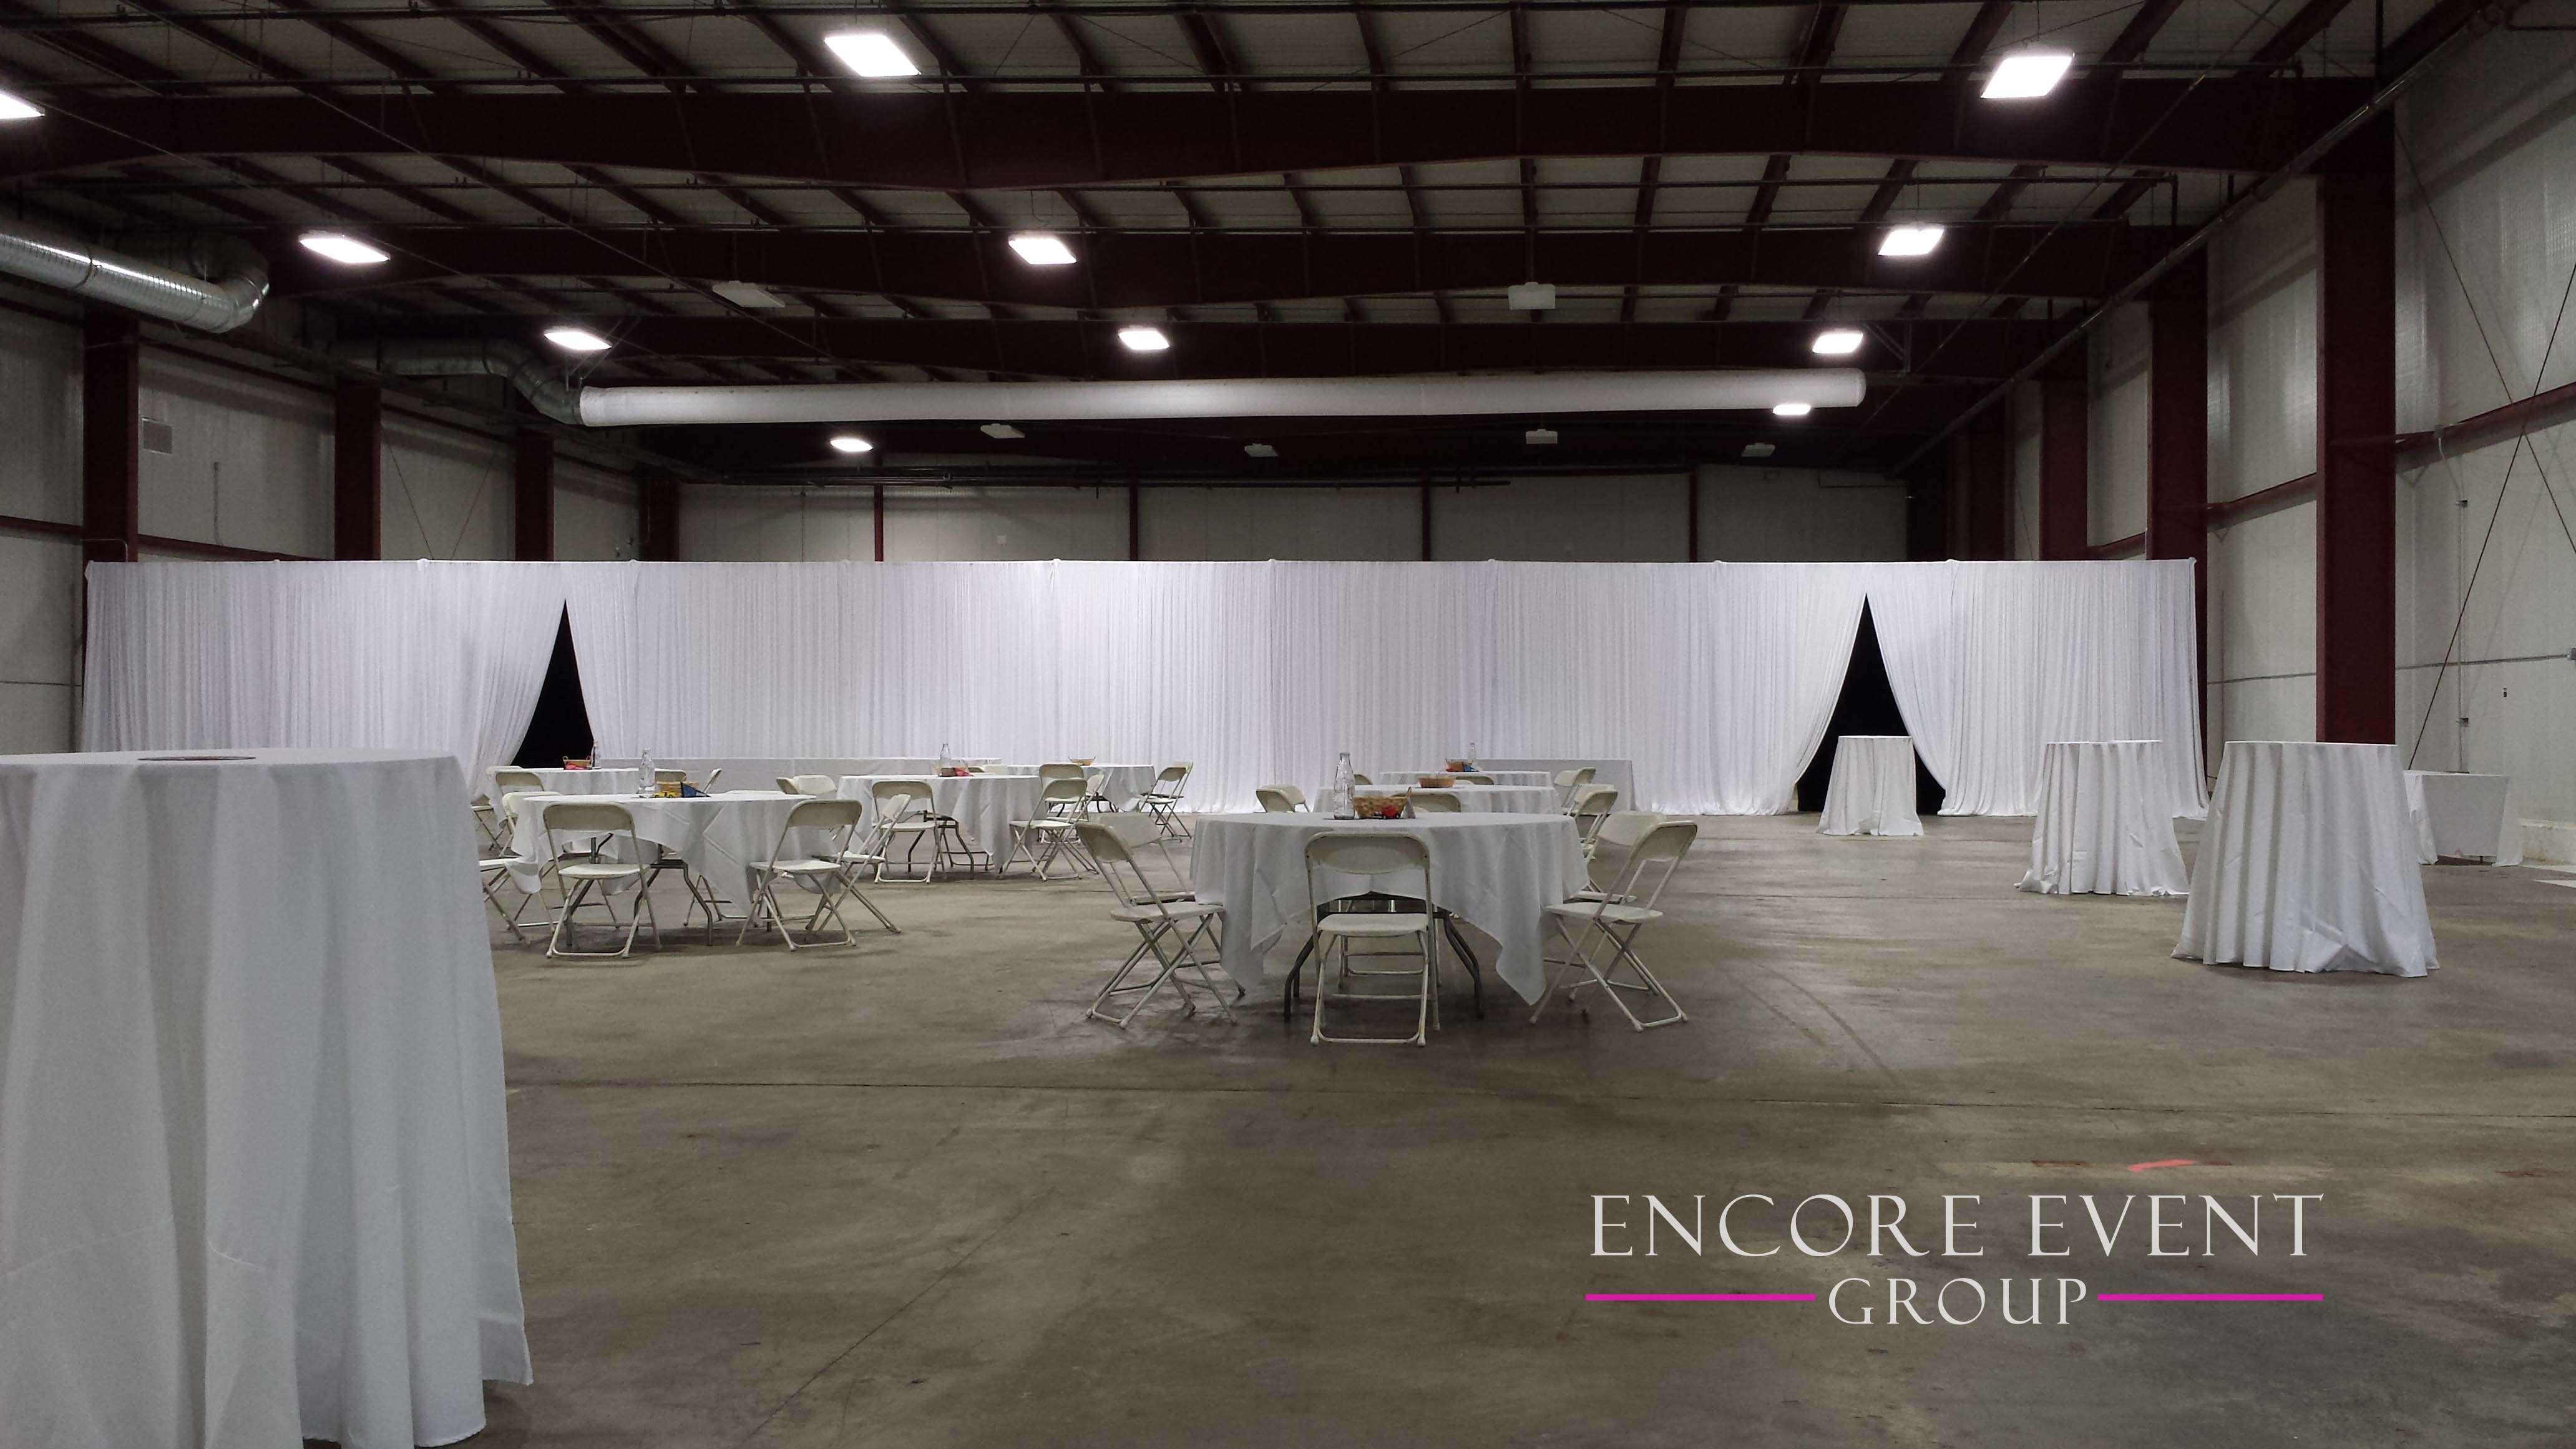 Ribbon cutting ceremony detroit michigan encore event group